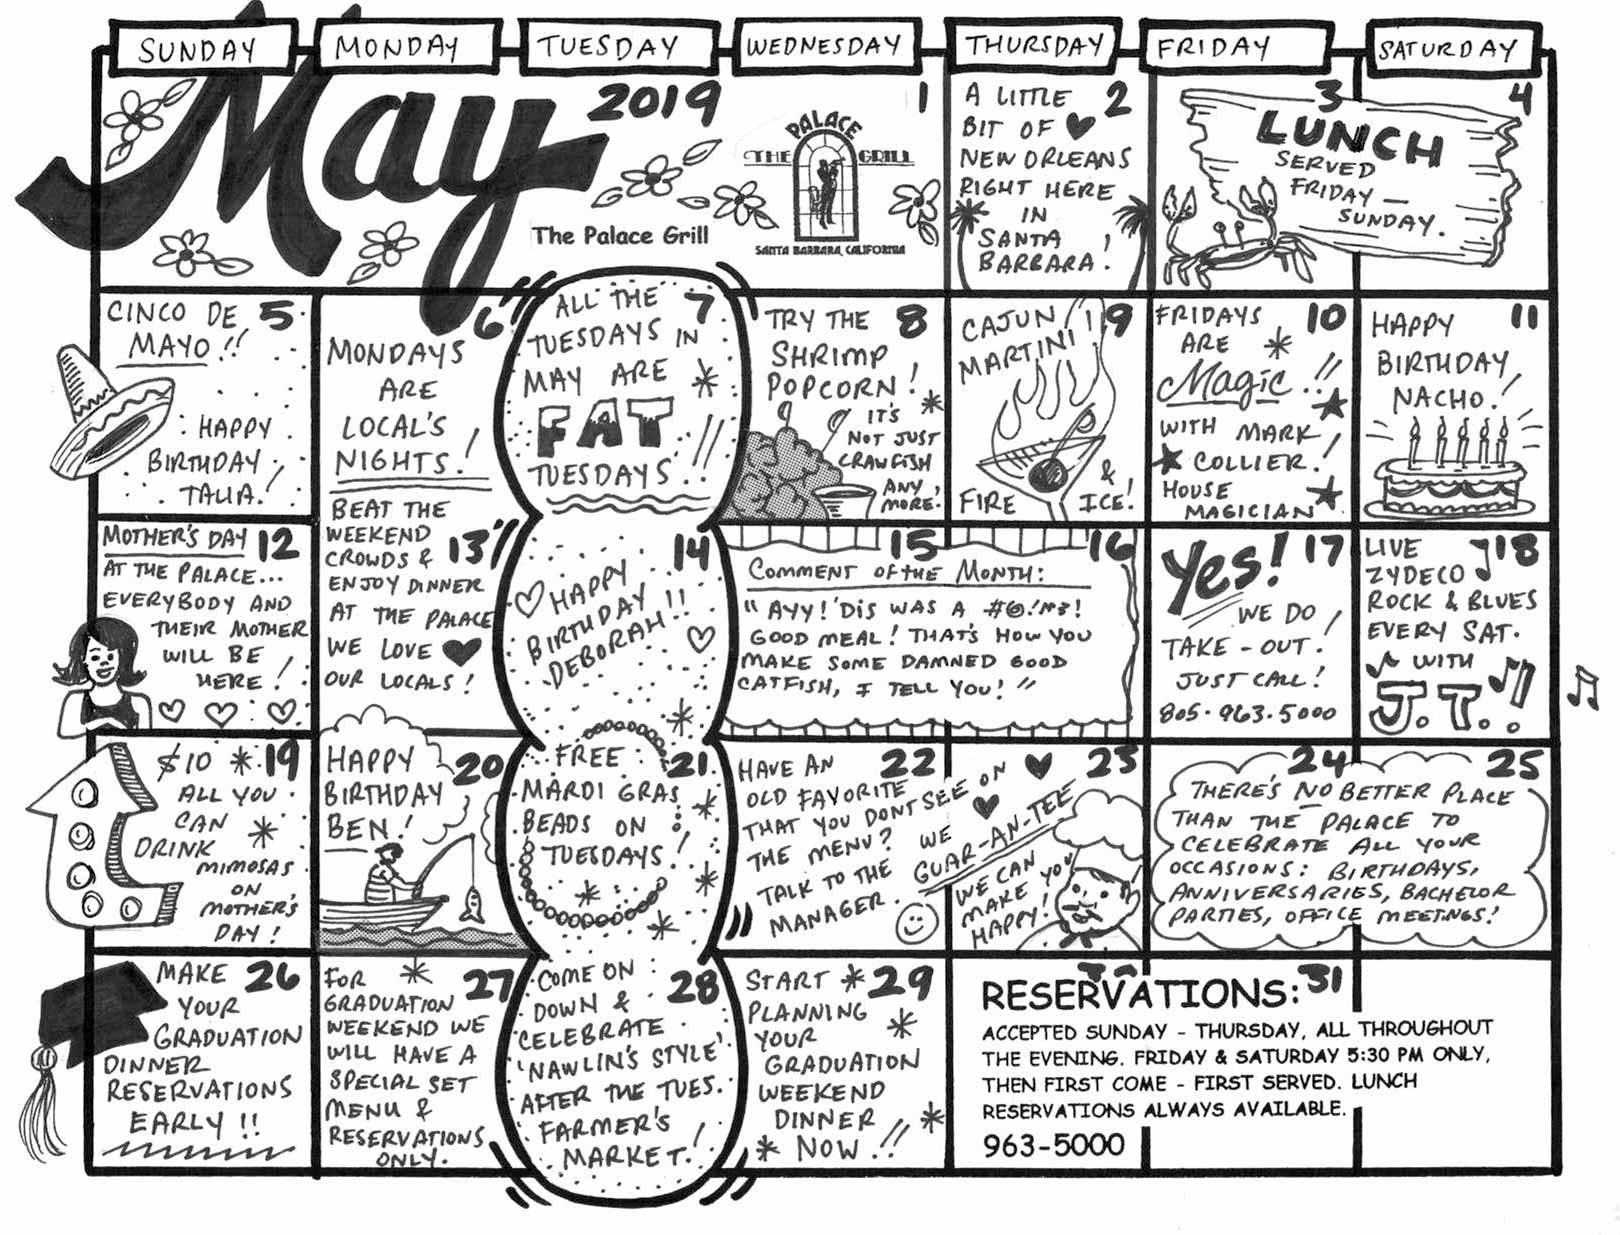 May 2019 Event Calendar for The Palace Grill